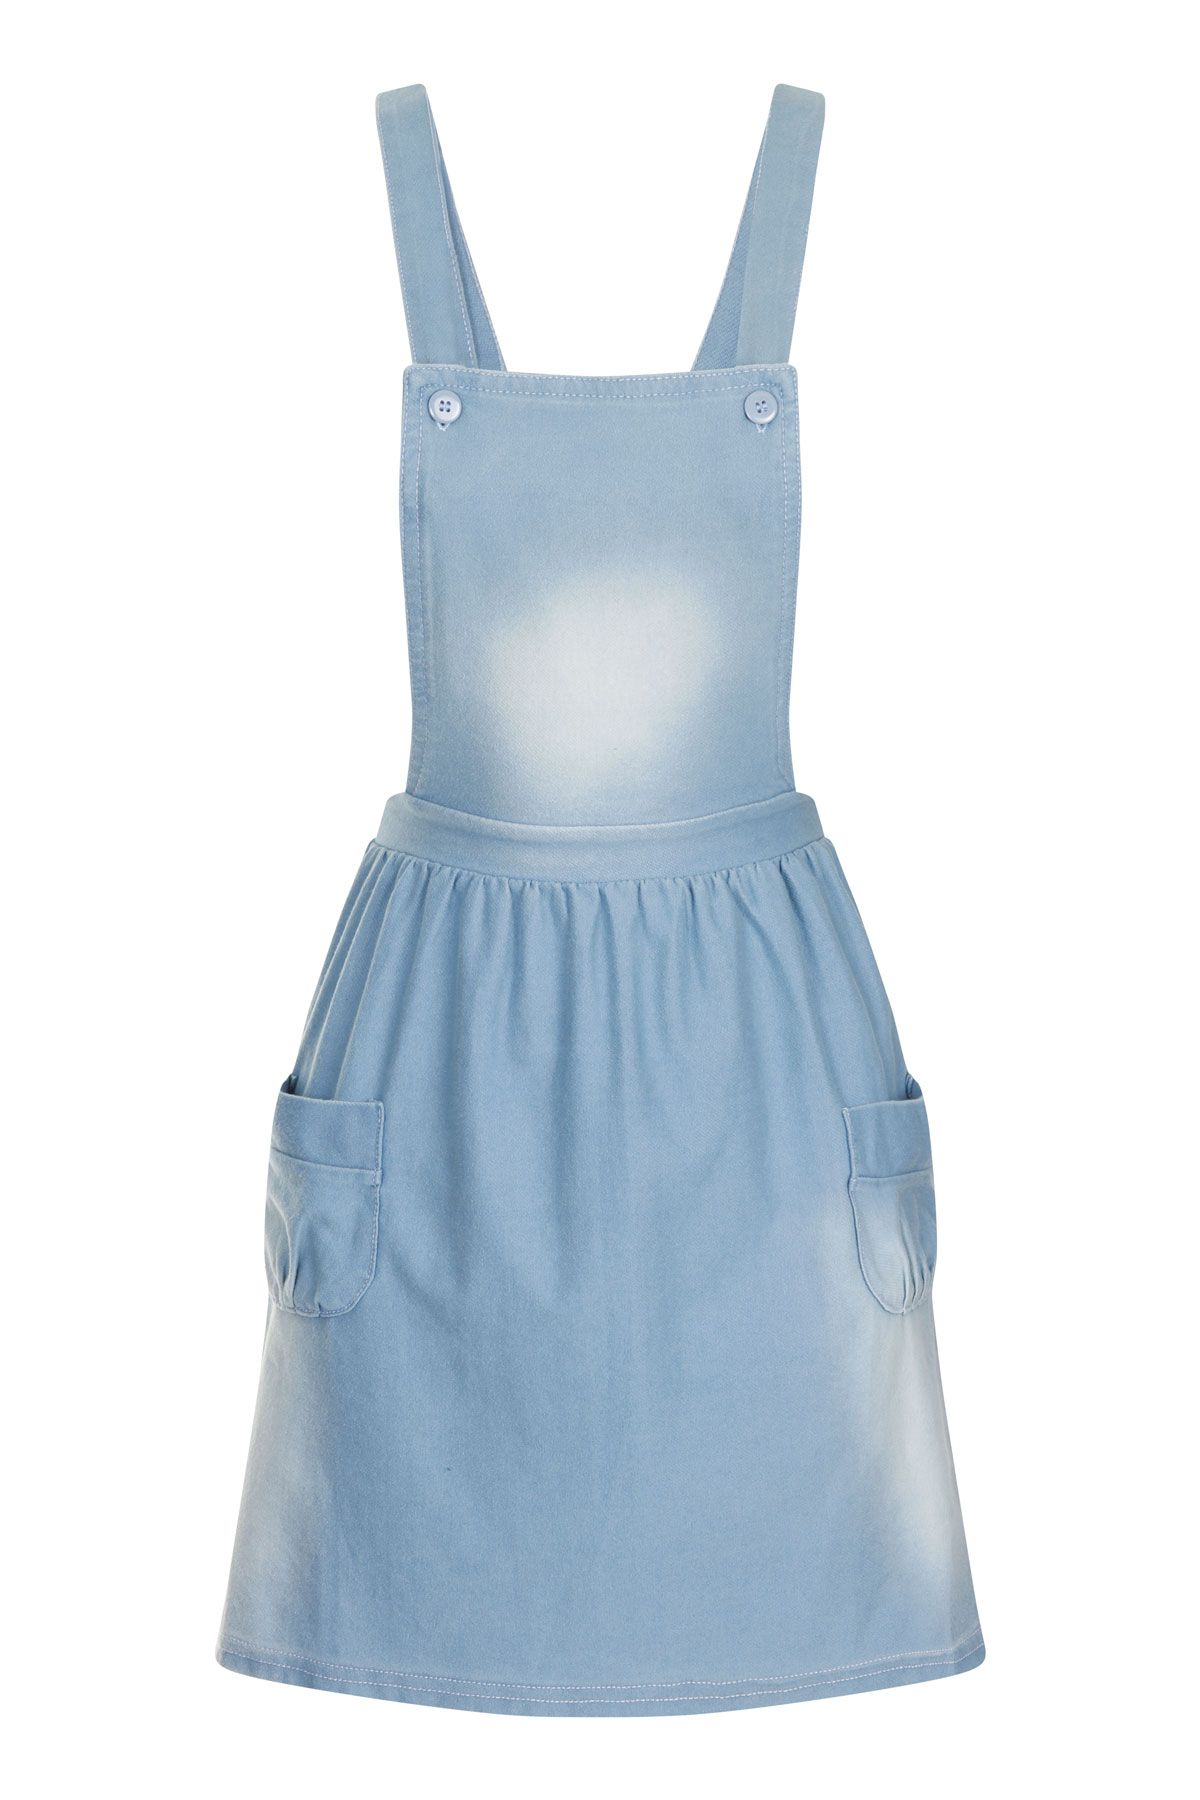 8ce851f519 Cute girls denim-blue skater style dungaree dress - Age 8